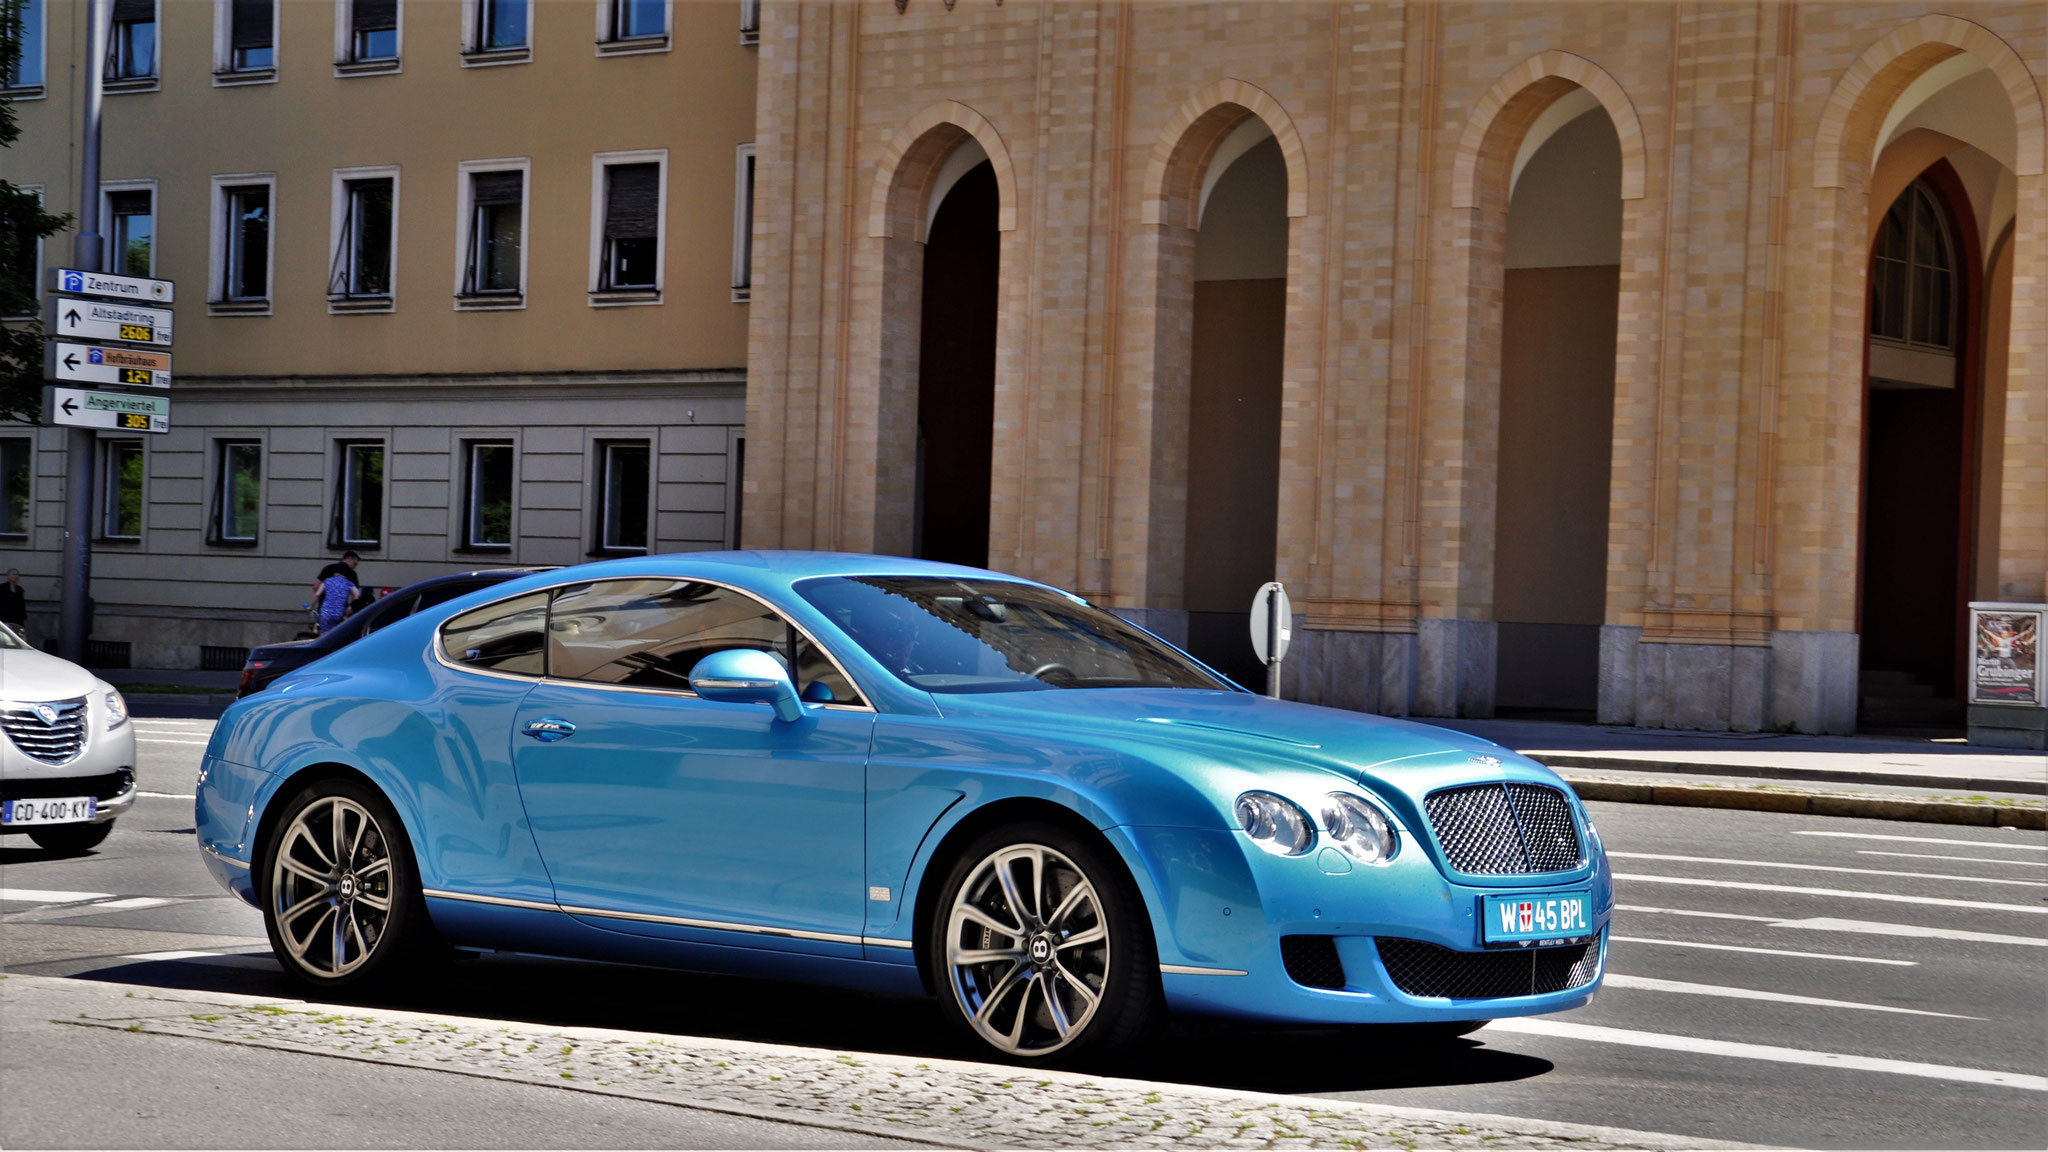 Bentley Continental GT - W-45-BPL (AUT)